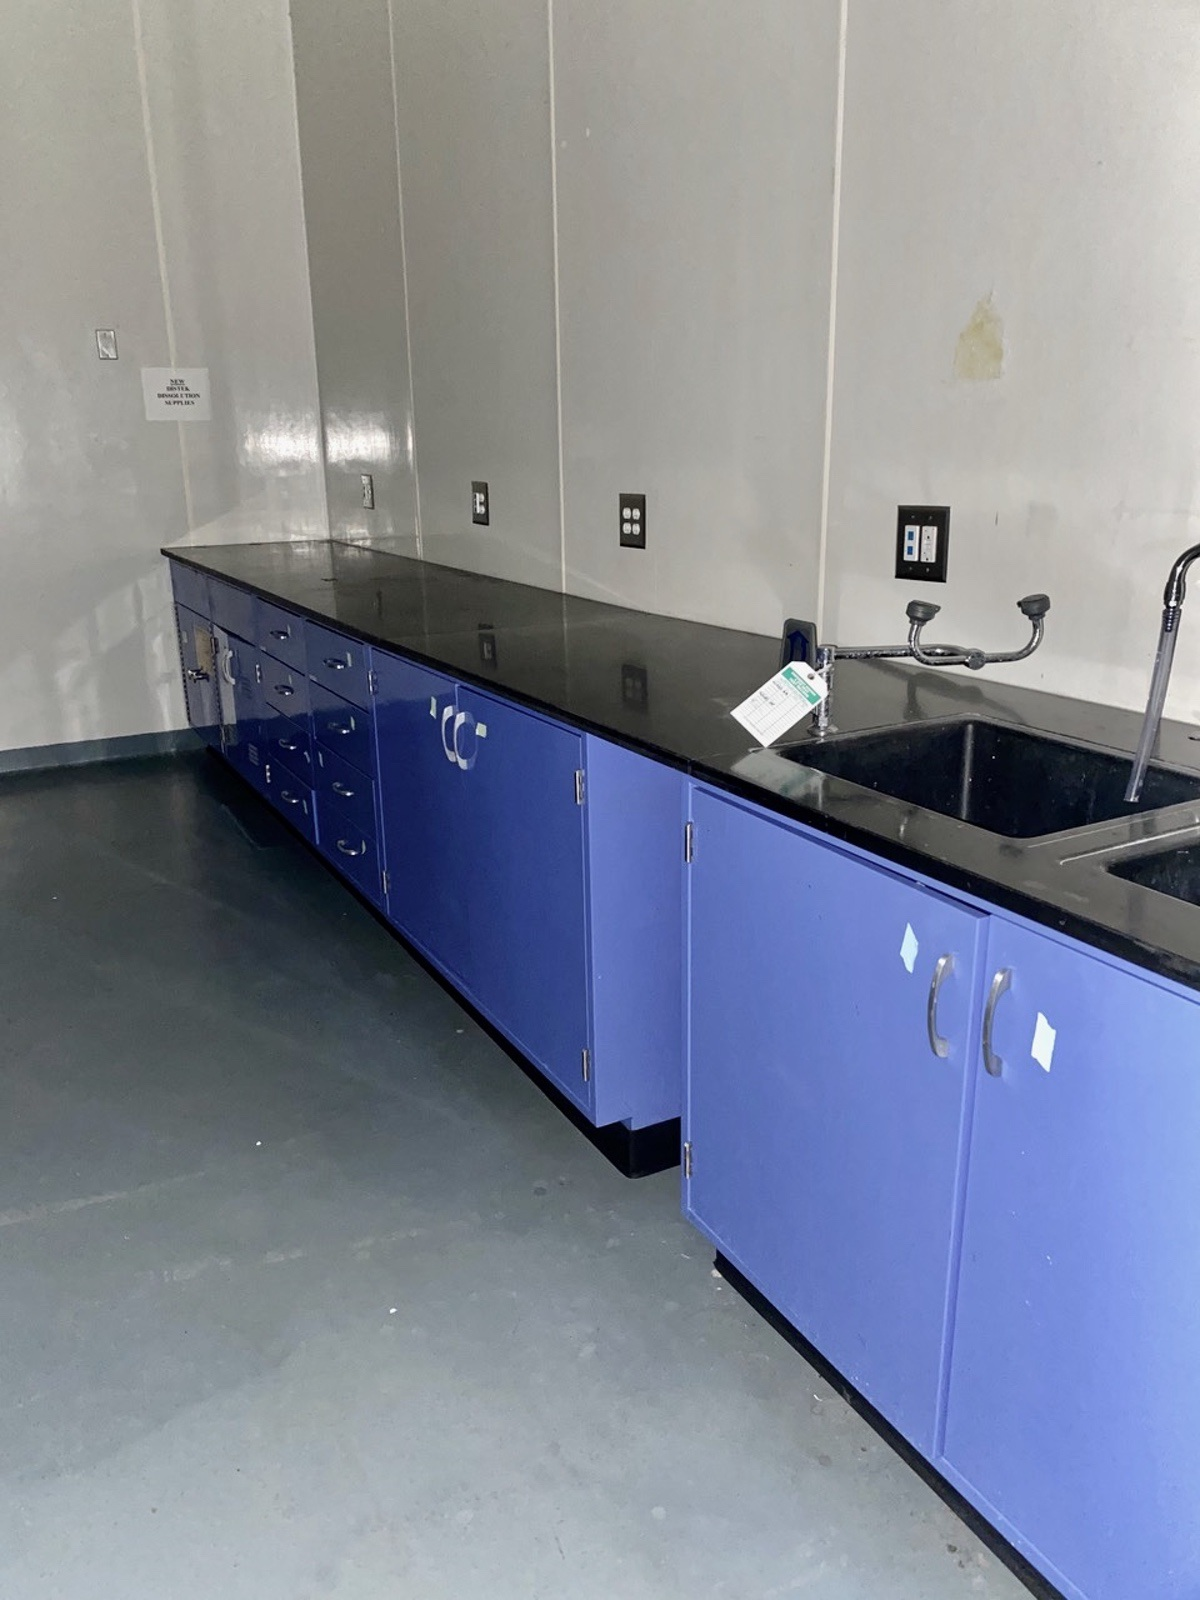 Lot 21 - Two Sets of Lab Cabinets with (1) Sink | Load Fee: $500